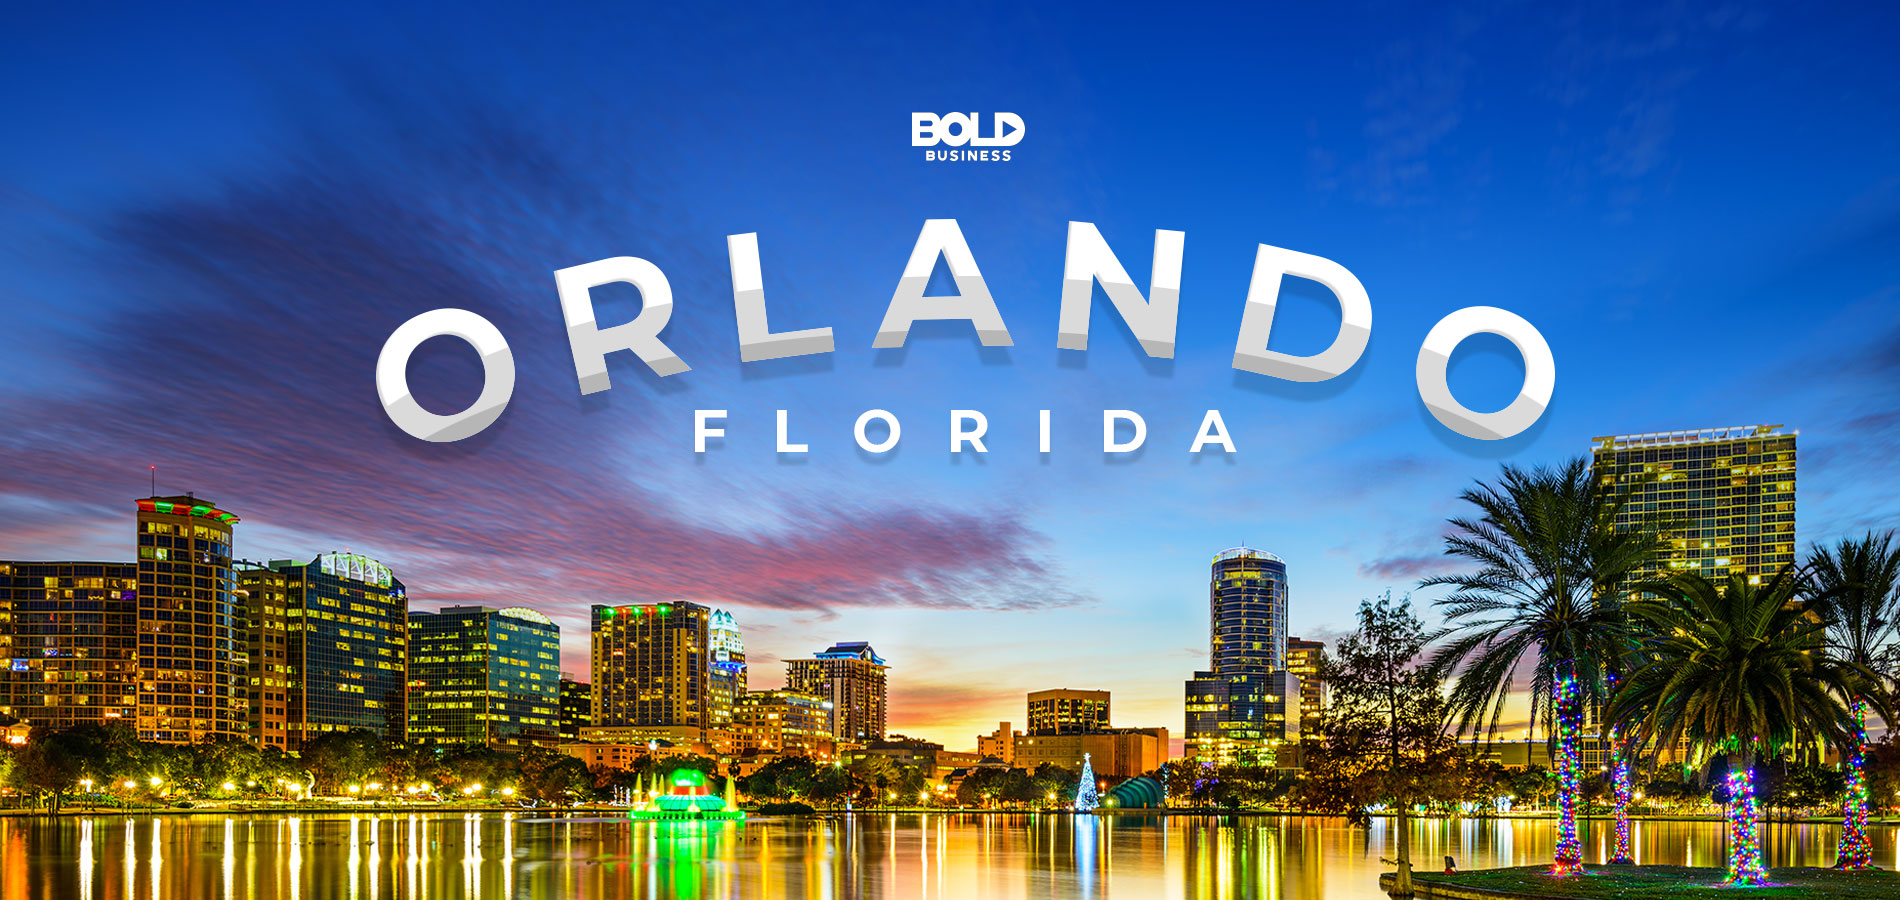 rapid urbanization, cityscape of orlando